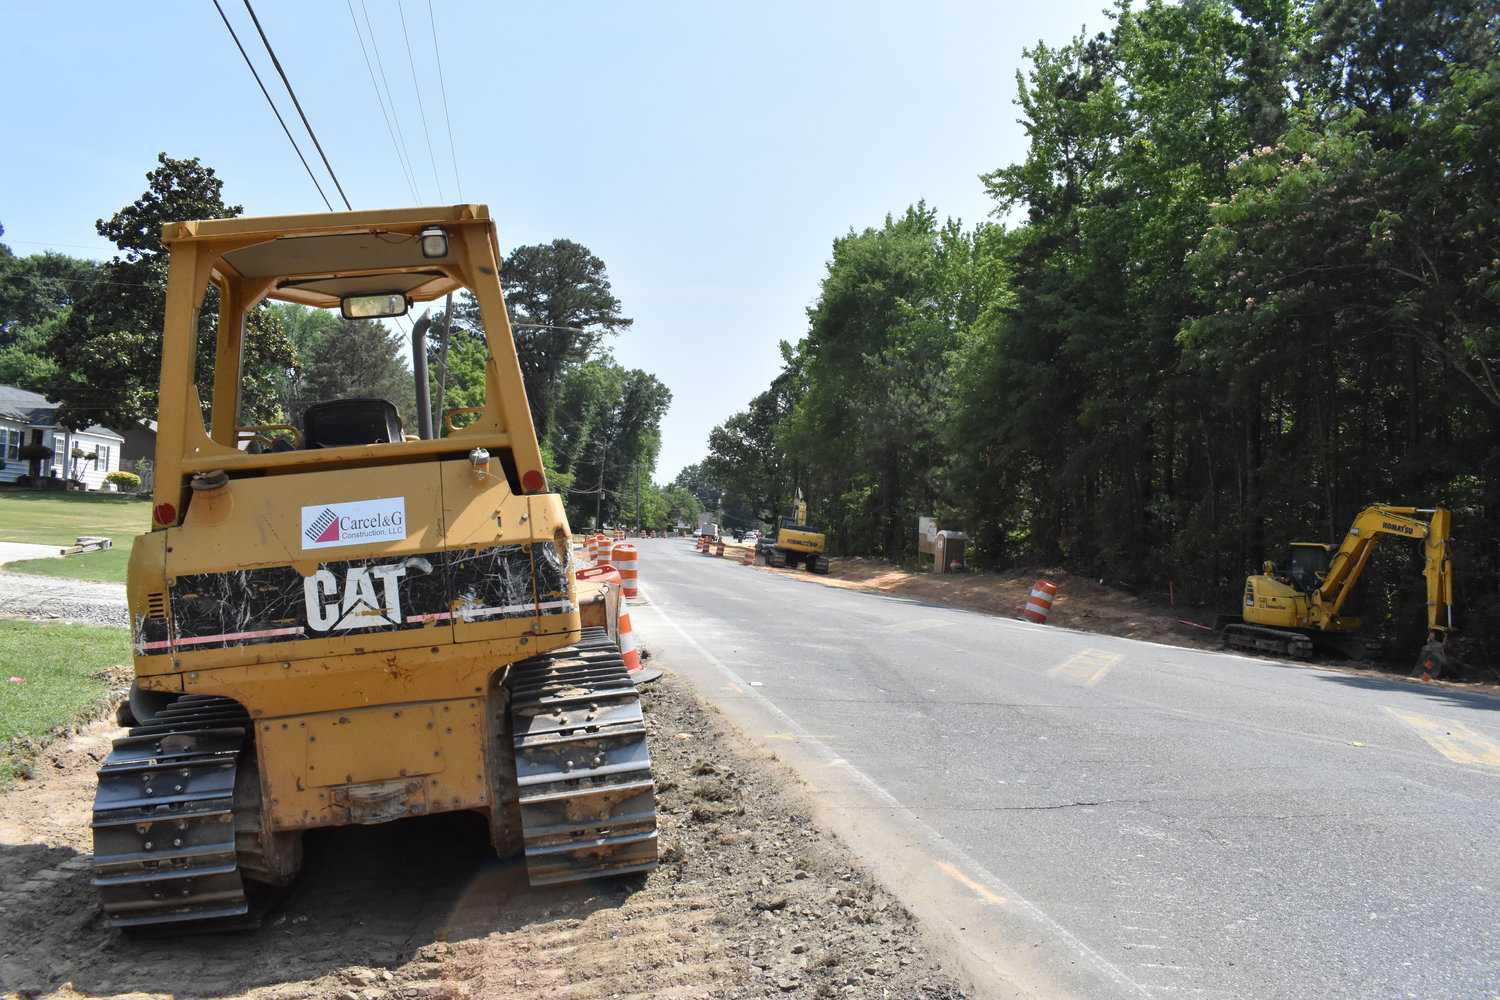 Heavy equipment and barrels line Airport Road in Jasper as crews work on the project to widen the road and put in more turning lanes.